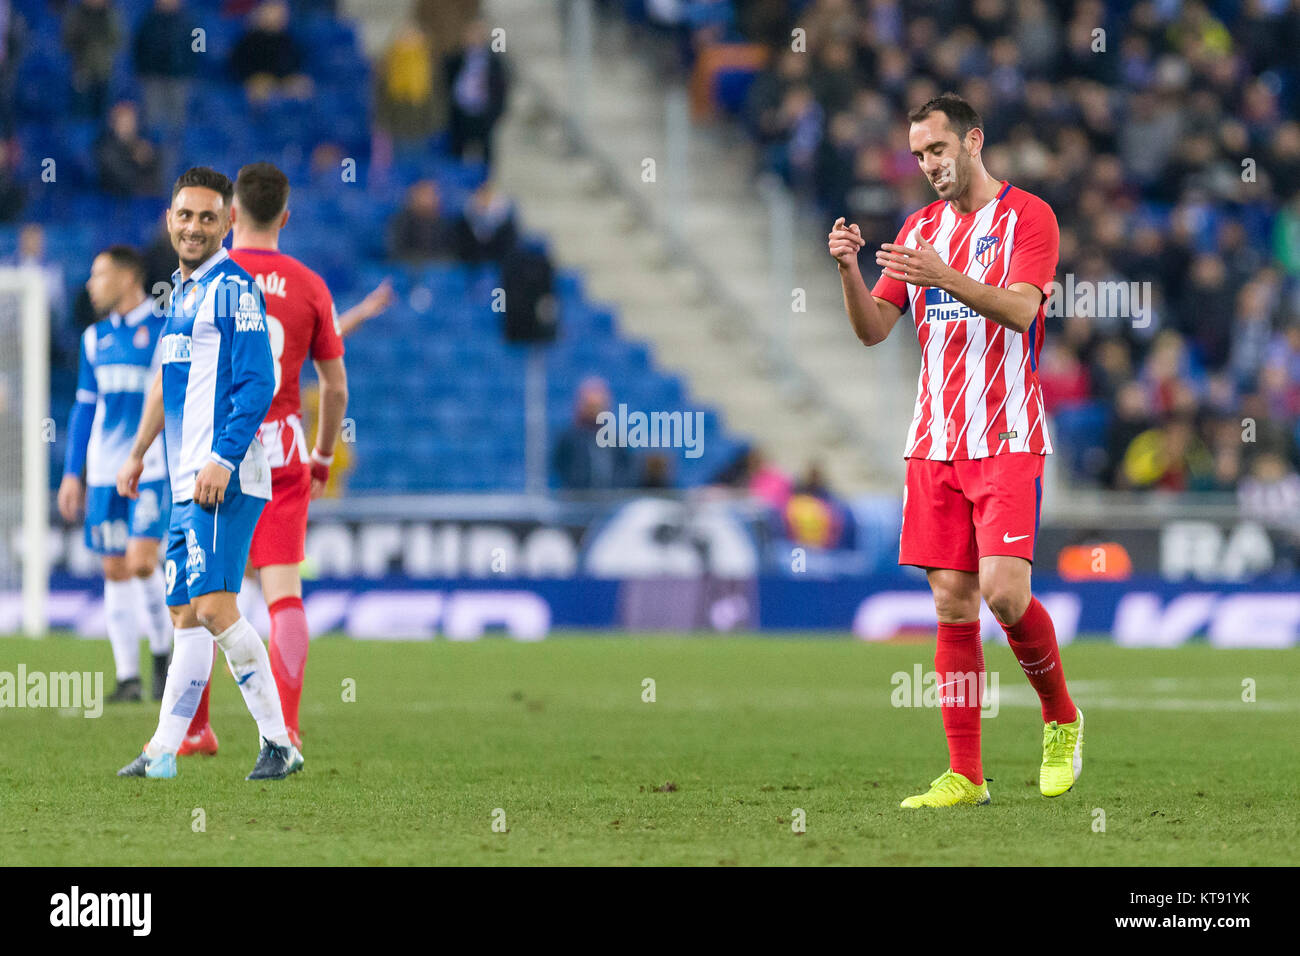 Spain December 22nd Atlético Madrid Defender Diego Godin 2 Stock Photo Alamy